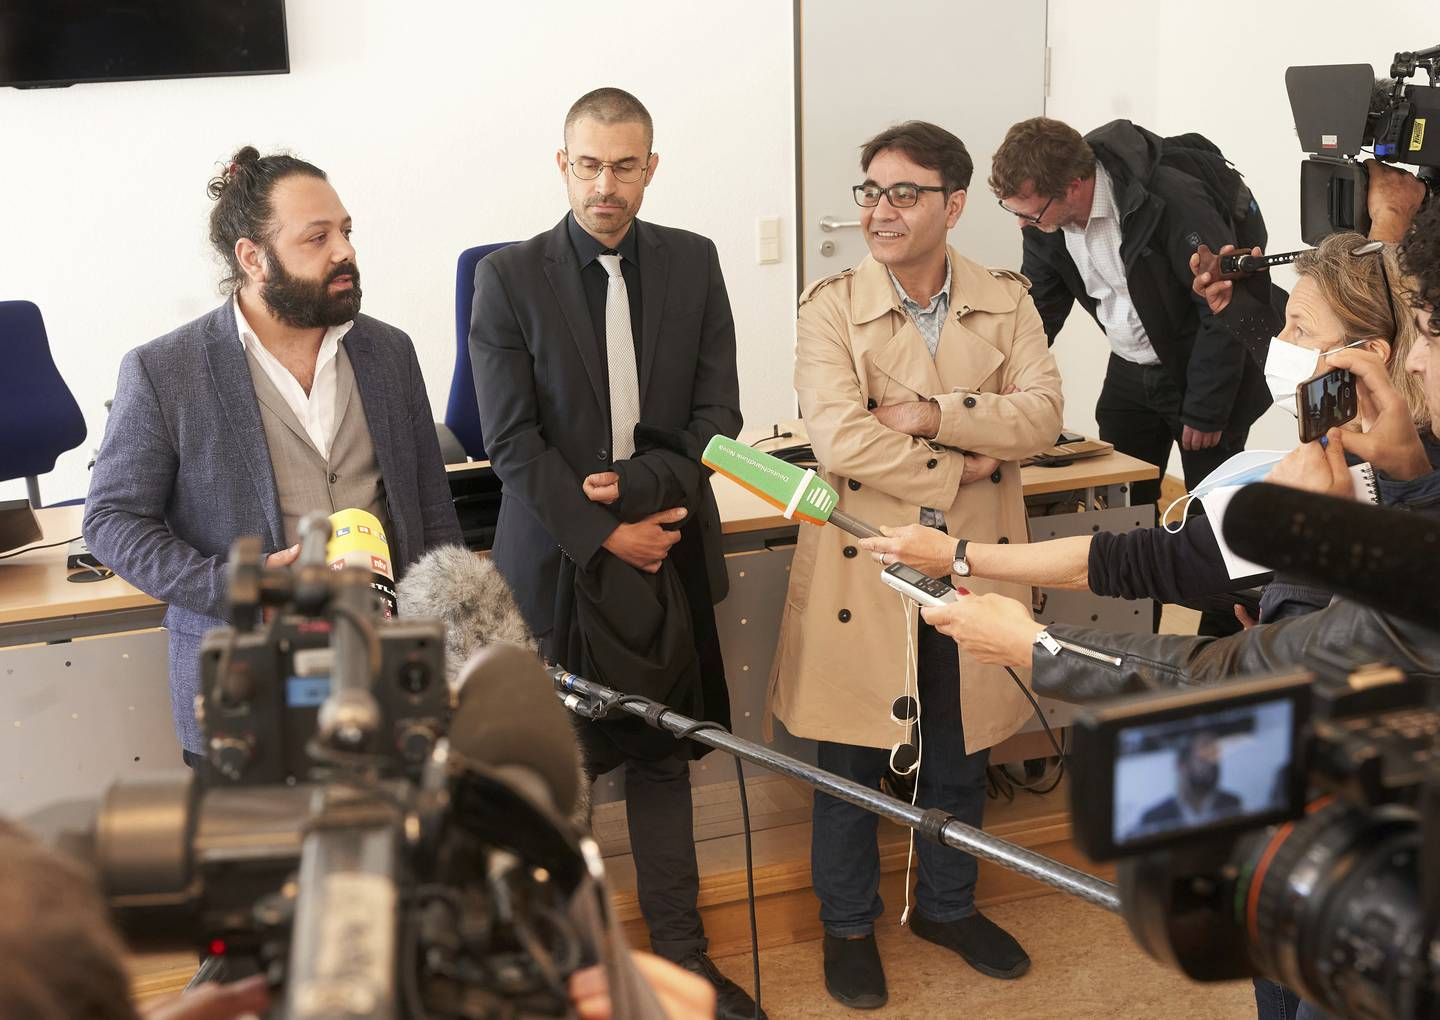 The joint plaintiffs Wassim Mukdad, from left, Patrick Kroker, attorney, and Hussein Ghrer talk to journalists after the first day's trial in Koblenz, Germany, Thursday, April 23, 2020. Two former members of Syria's secret police go on trial Thursday in Germany accused of crimes against humanity for their role in a government-run detention center where large numbers of opposition protesters were tortured.(Thomas Frey/dpa via AP)